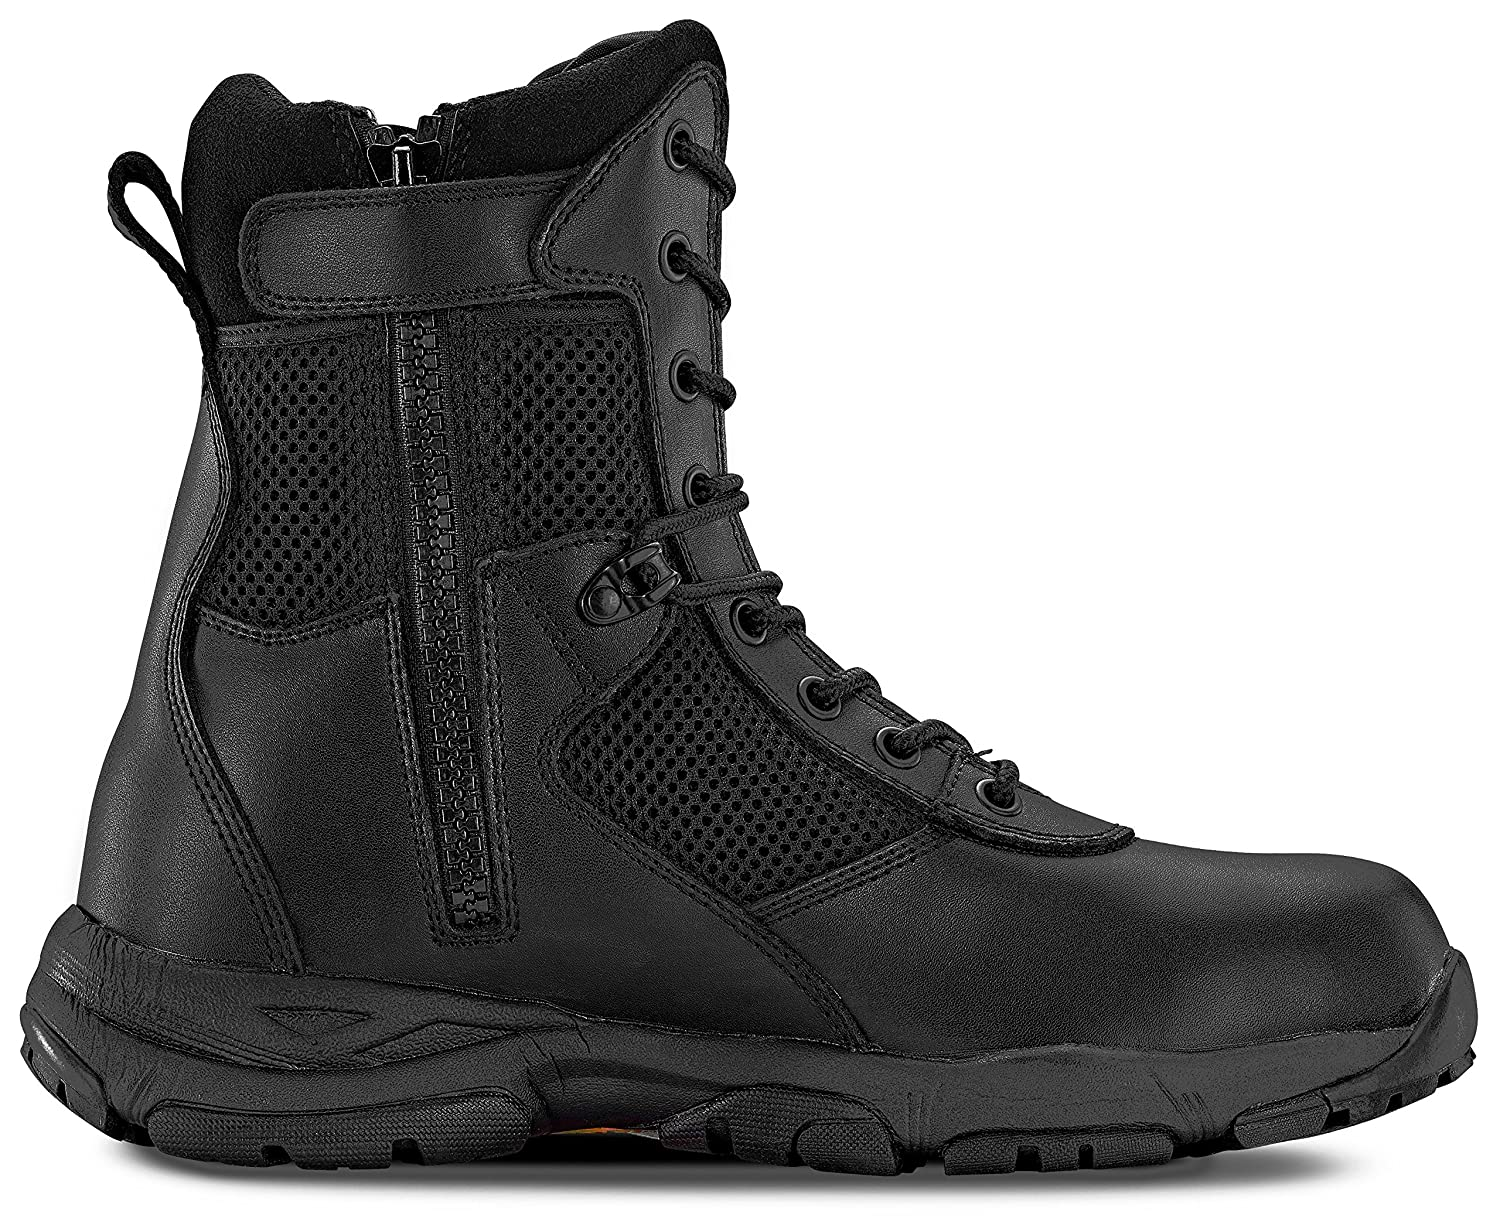 Maelstrom Men's LANDSHIP 8 Inch Military Tactical Duty Work Boot with Zipper Maelstrom Footwear LANDSHIP 8'' ZIPPER-M